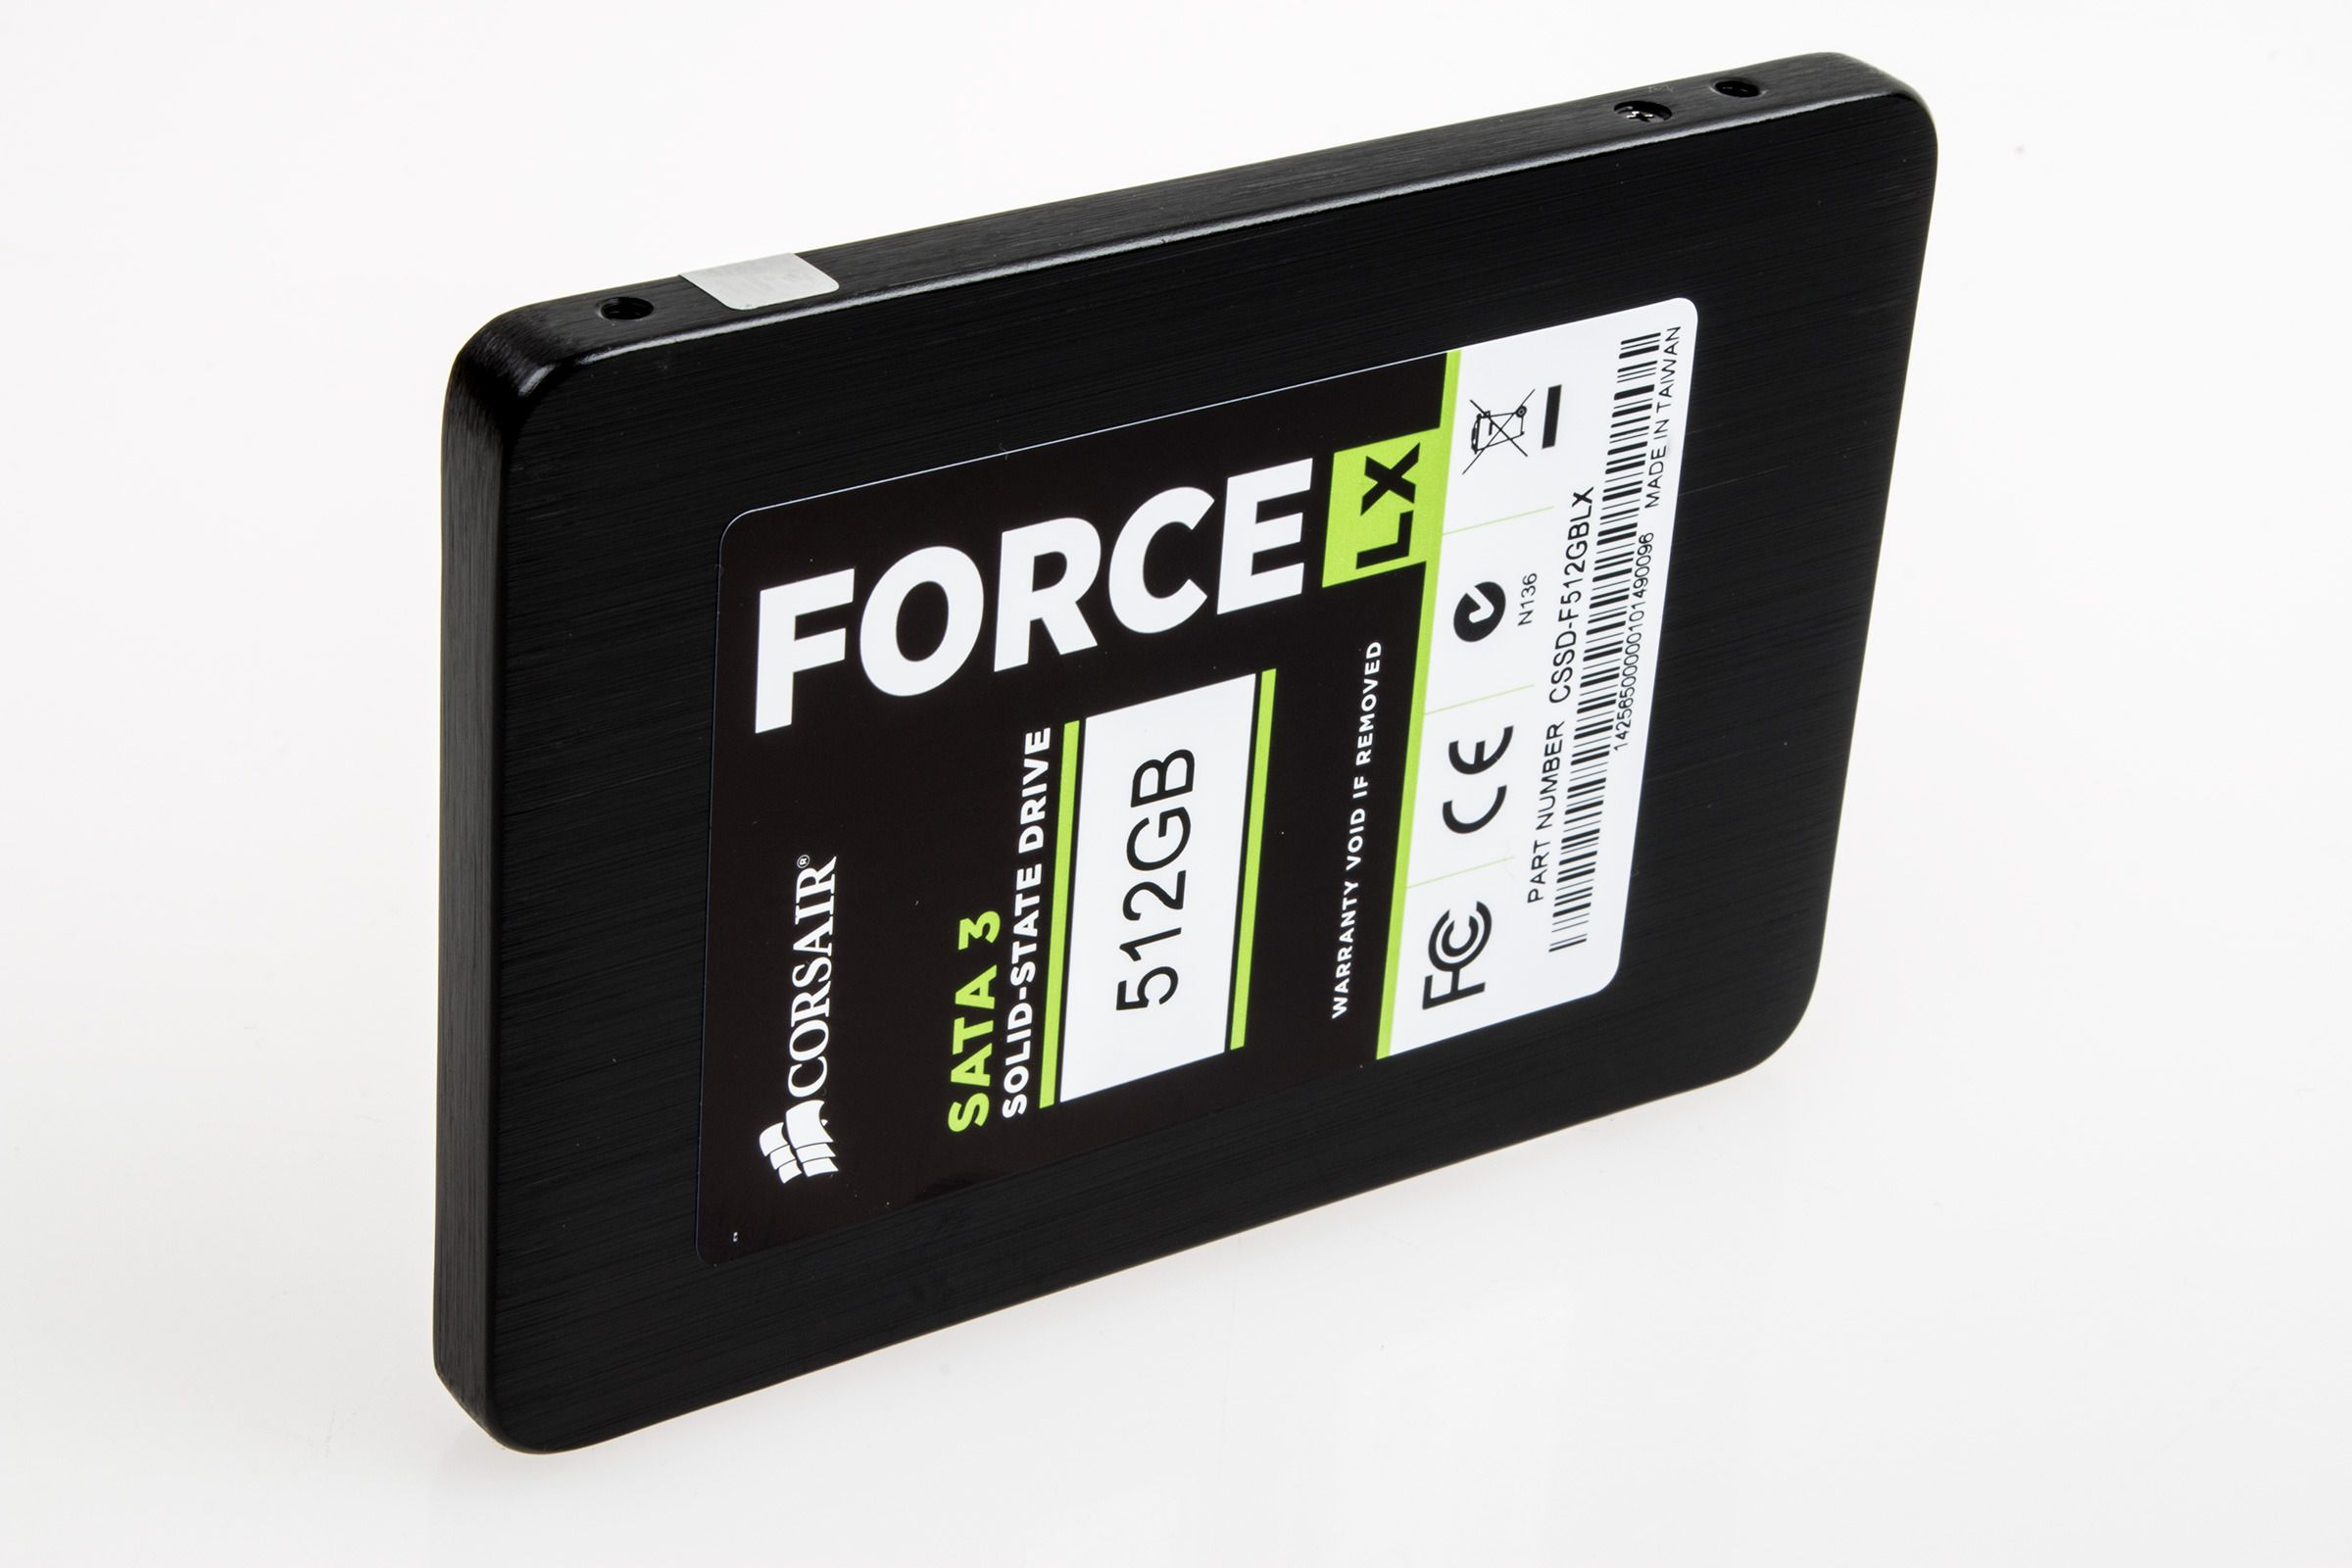 Corsair Force LX 512 GB SSD.Foto: Varg Aamo, Hardware.no